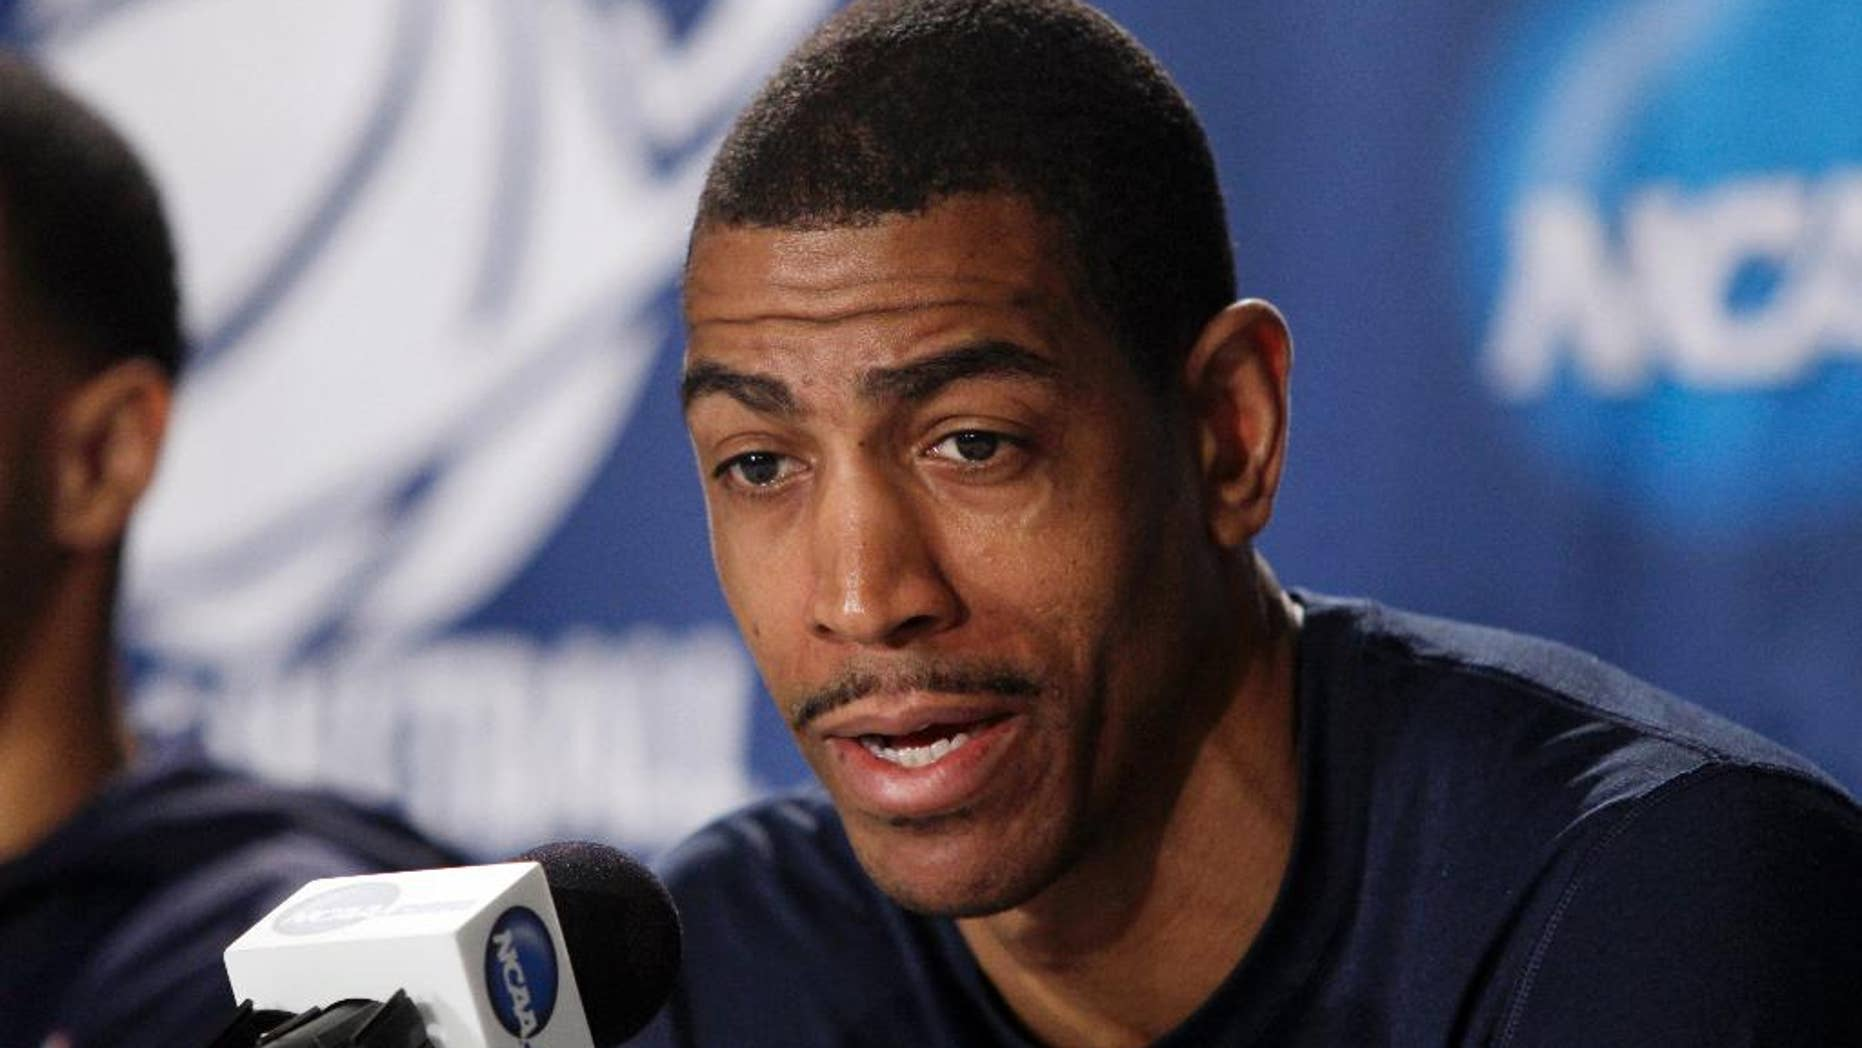 Connecticut head coach Kevin Ollie responds to a question during a news conference at the NCAA college basketball tournament  Saturday, March 29, 2014, in New York. Connecticut plays Michigan State in a regional final on Sunday. (AP Photo/Frank Franklin II)